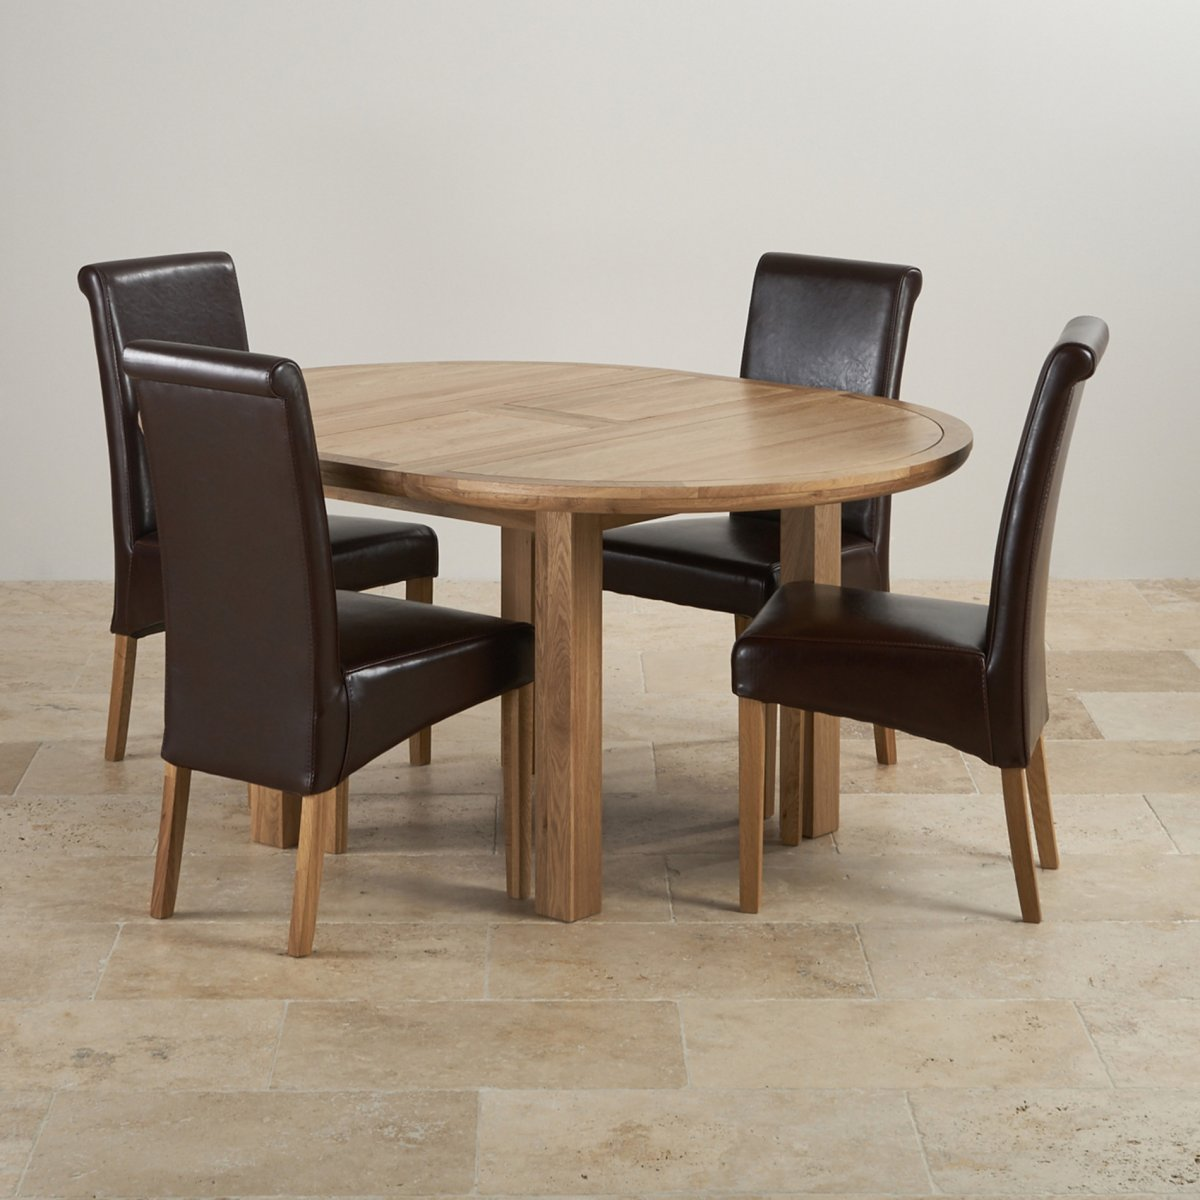 Round Oak Table And Chairs: Knightsbridge Extending Dining Set: Oak Table + 4 Leather